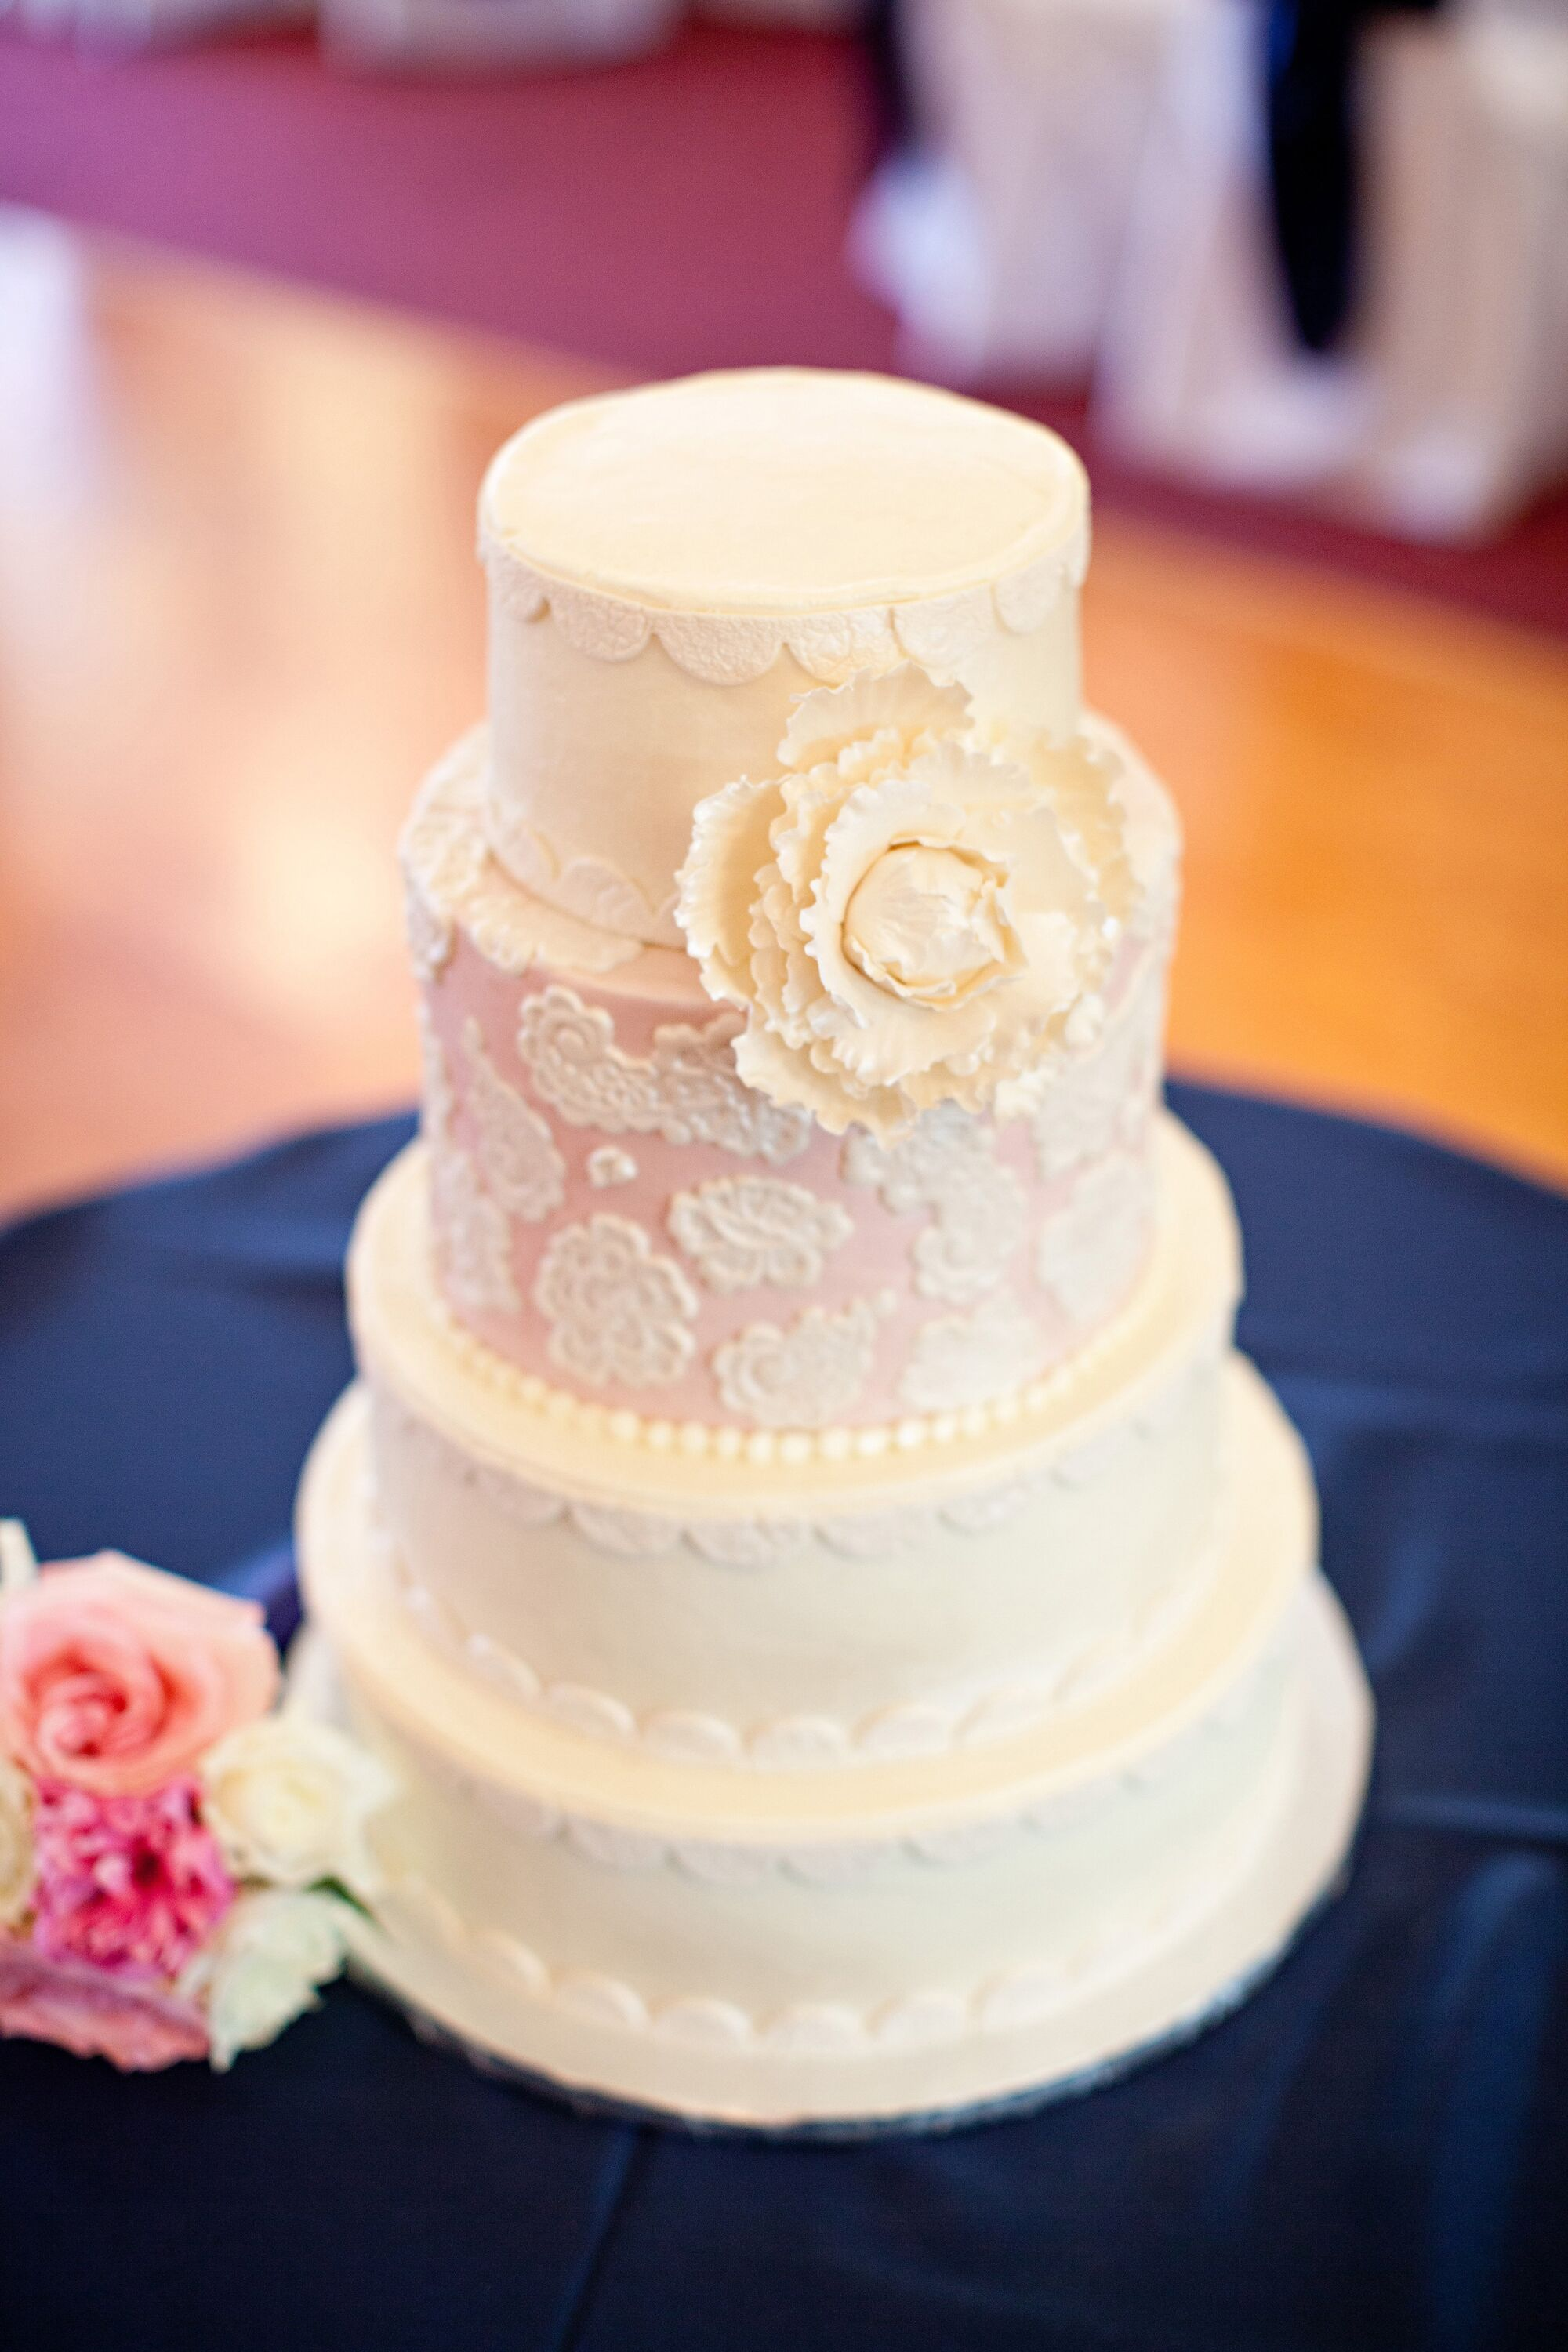 7 Beautiful Buttercream Frosted Wedding Cakes - Frosted Wedding Cakes